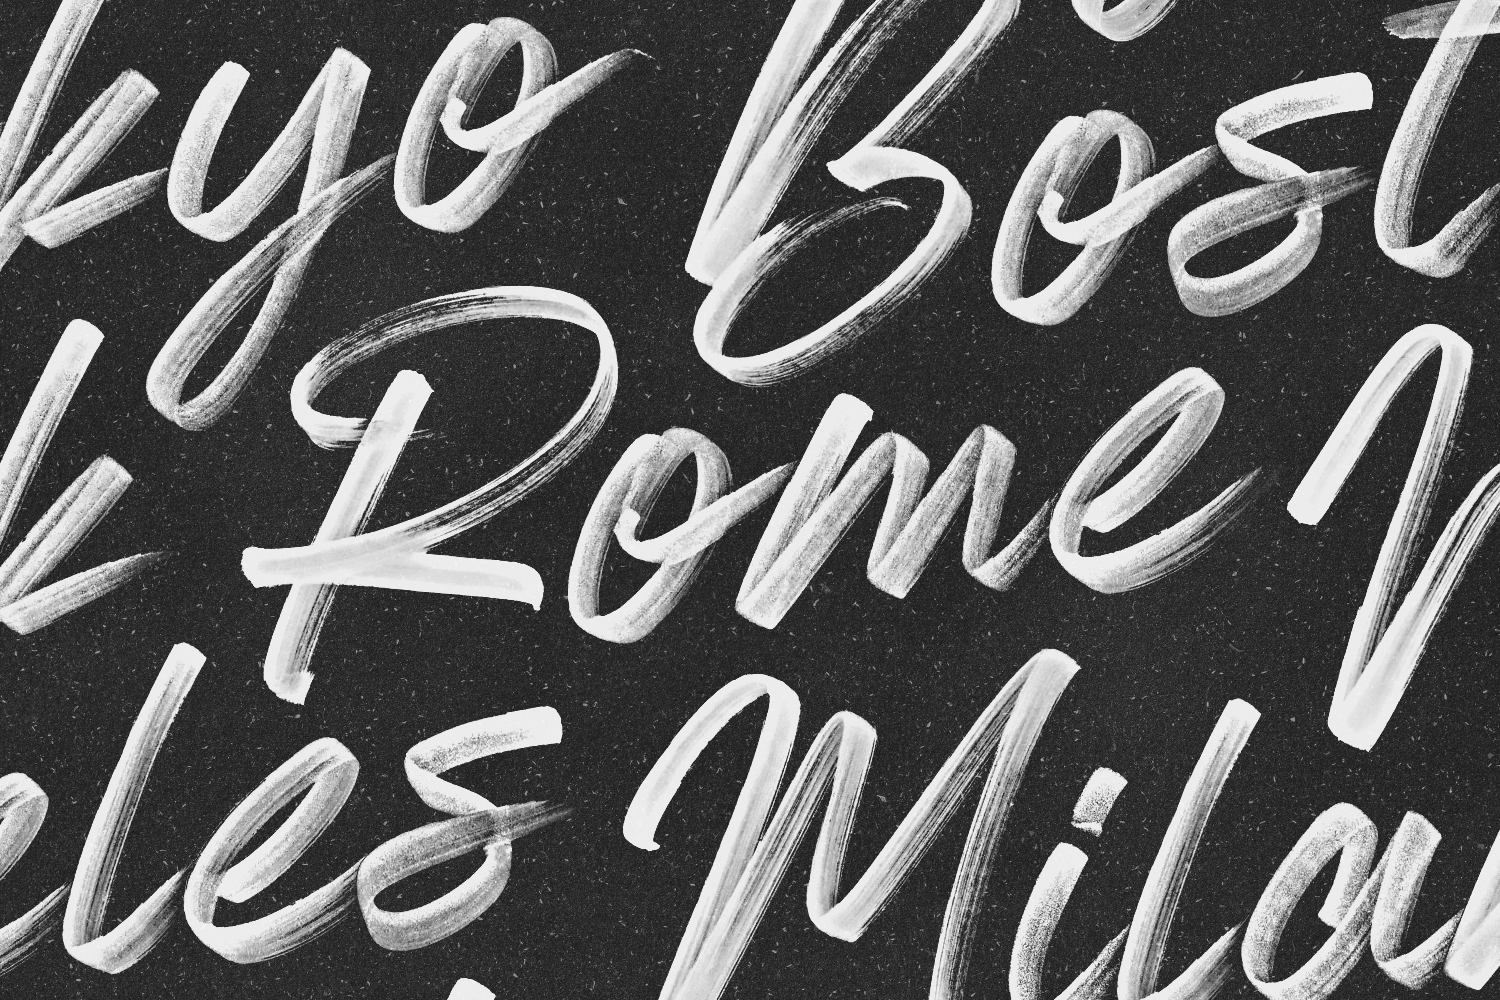 Almonte - Opentype SVG Font - Available on Creative Market